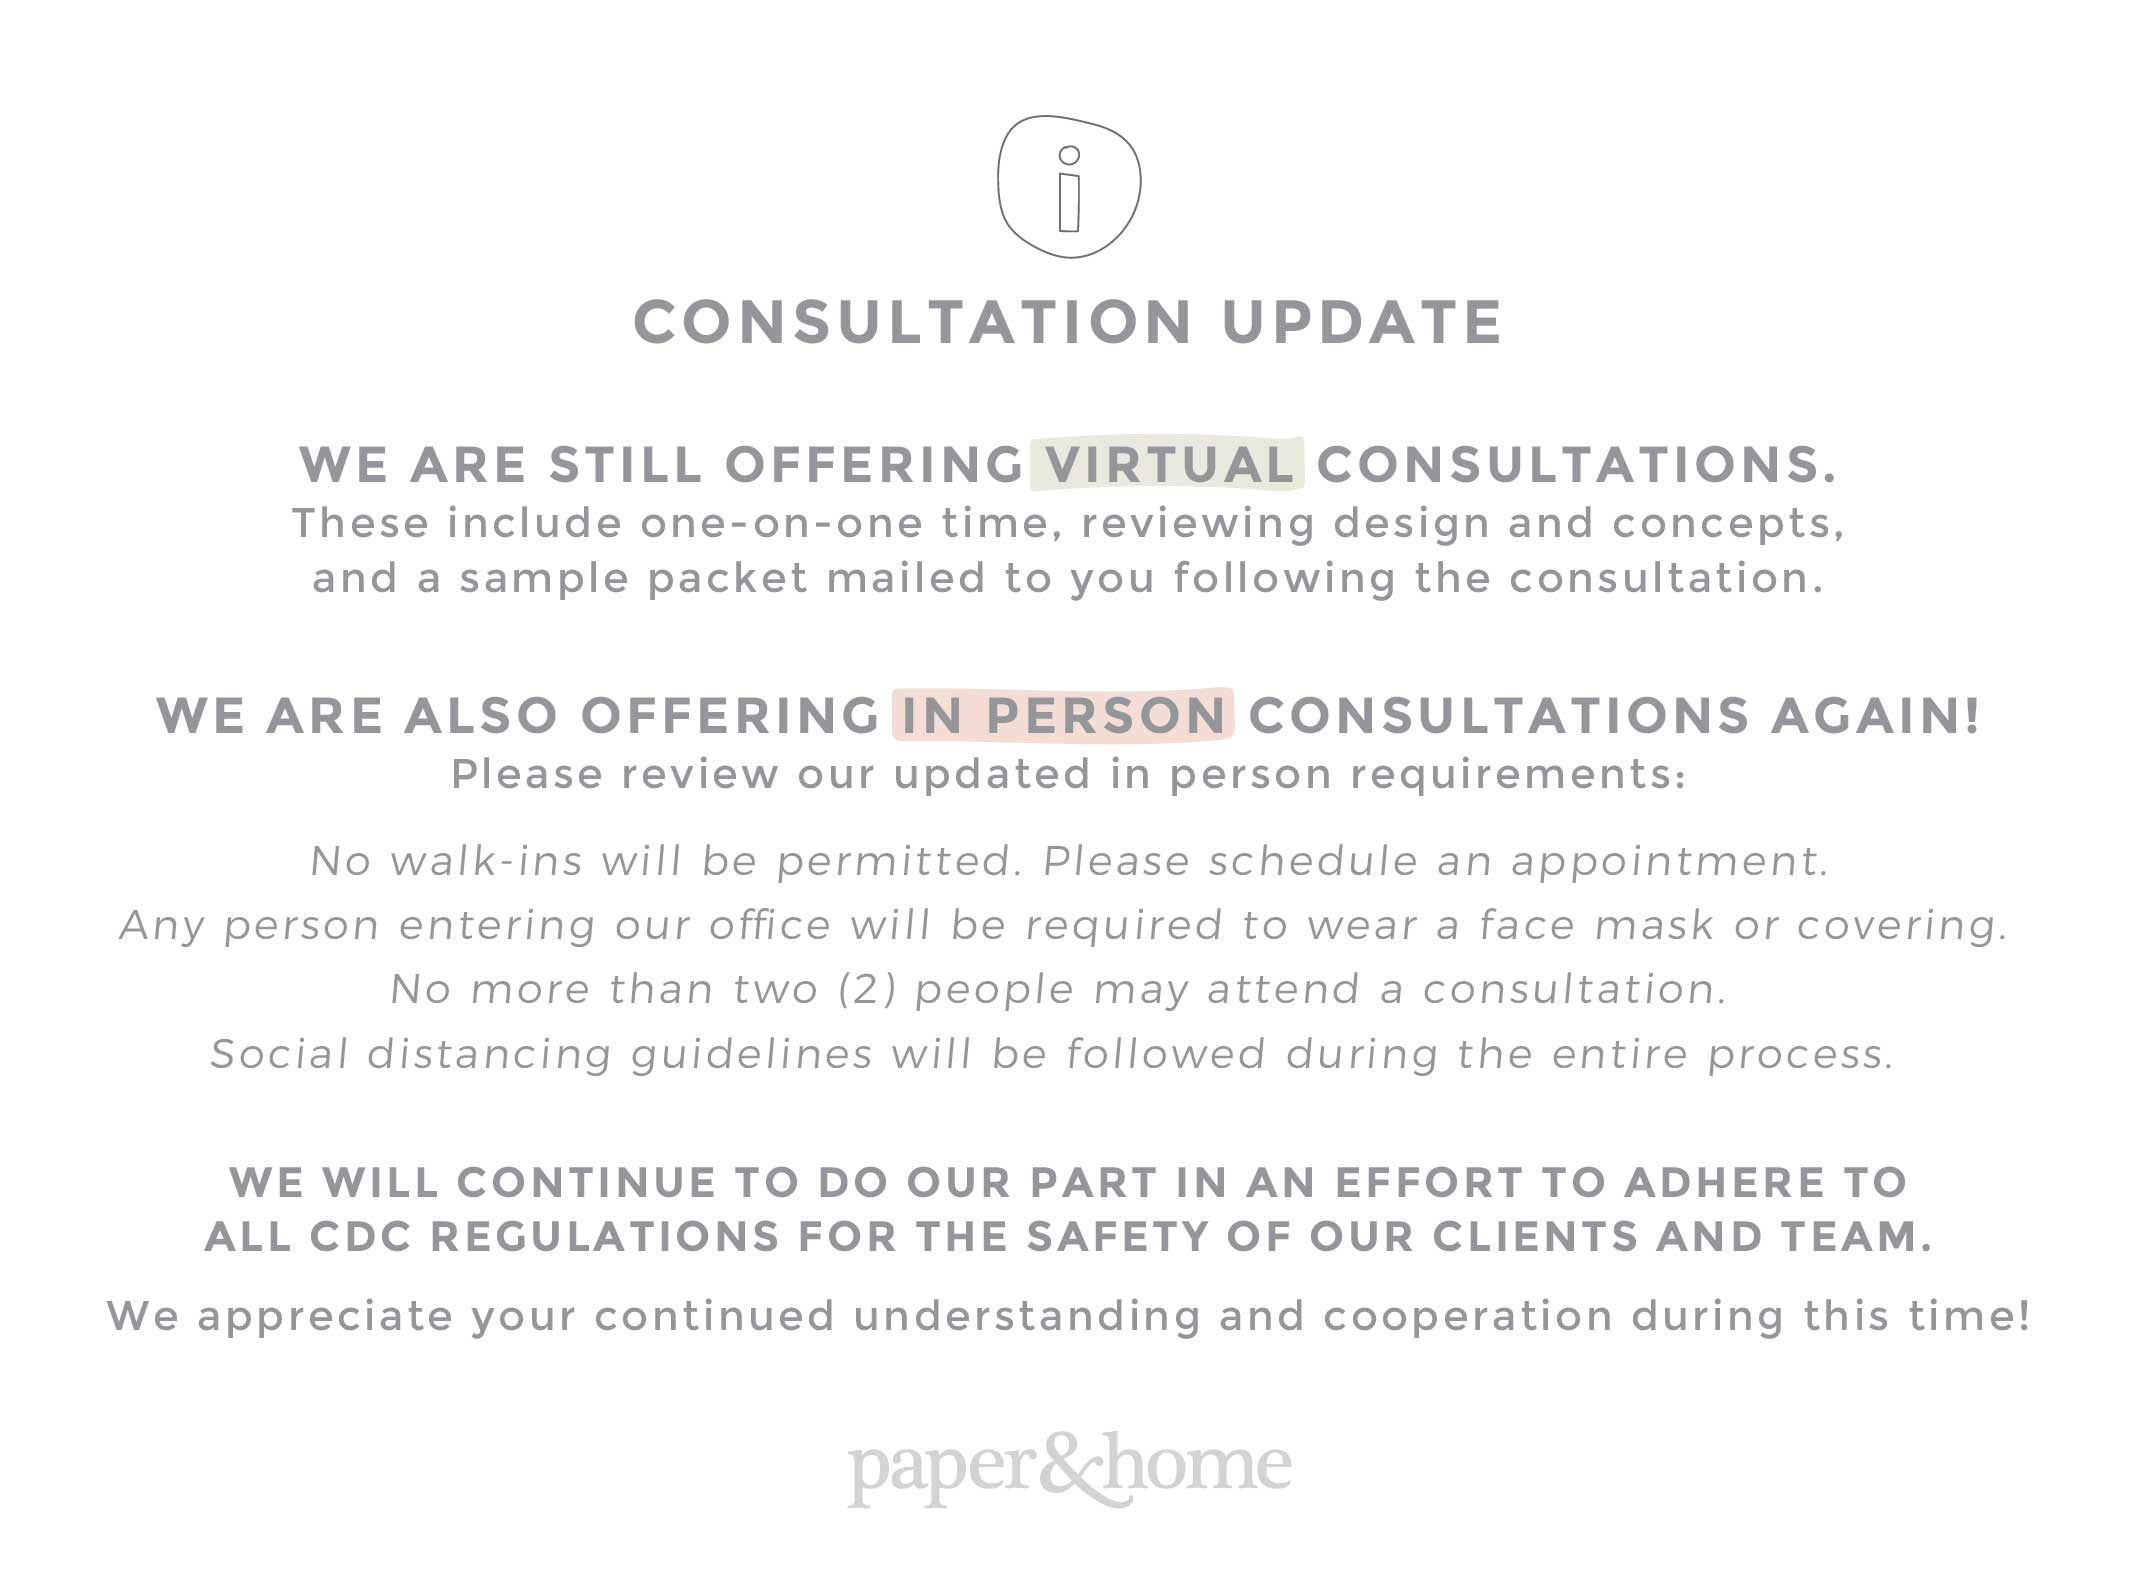 We are still offering virtual consultations. These include one-on-one time, reviewing design and concepts, and a sample packet mailed to you following the consultation. We are also beginning to offer in person consultations again! Please review our updated in person requirements: